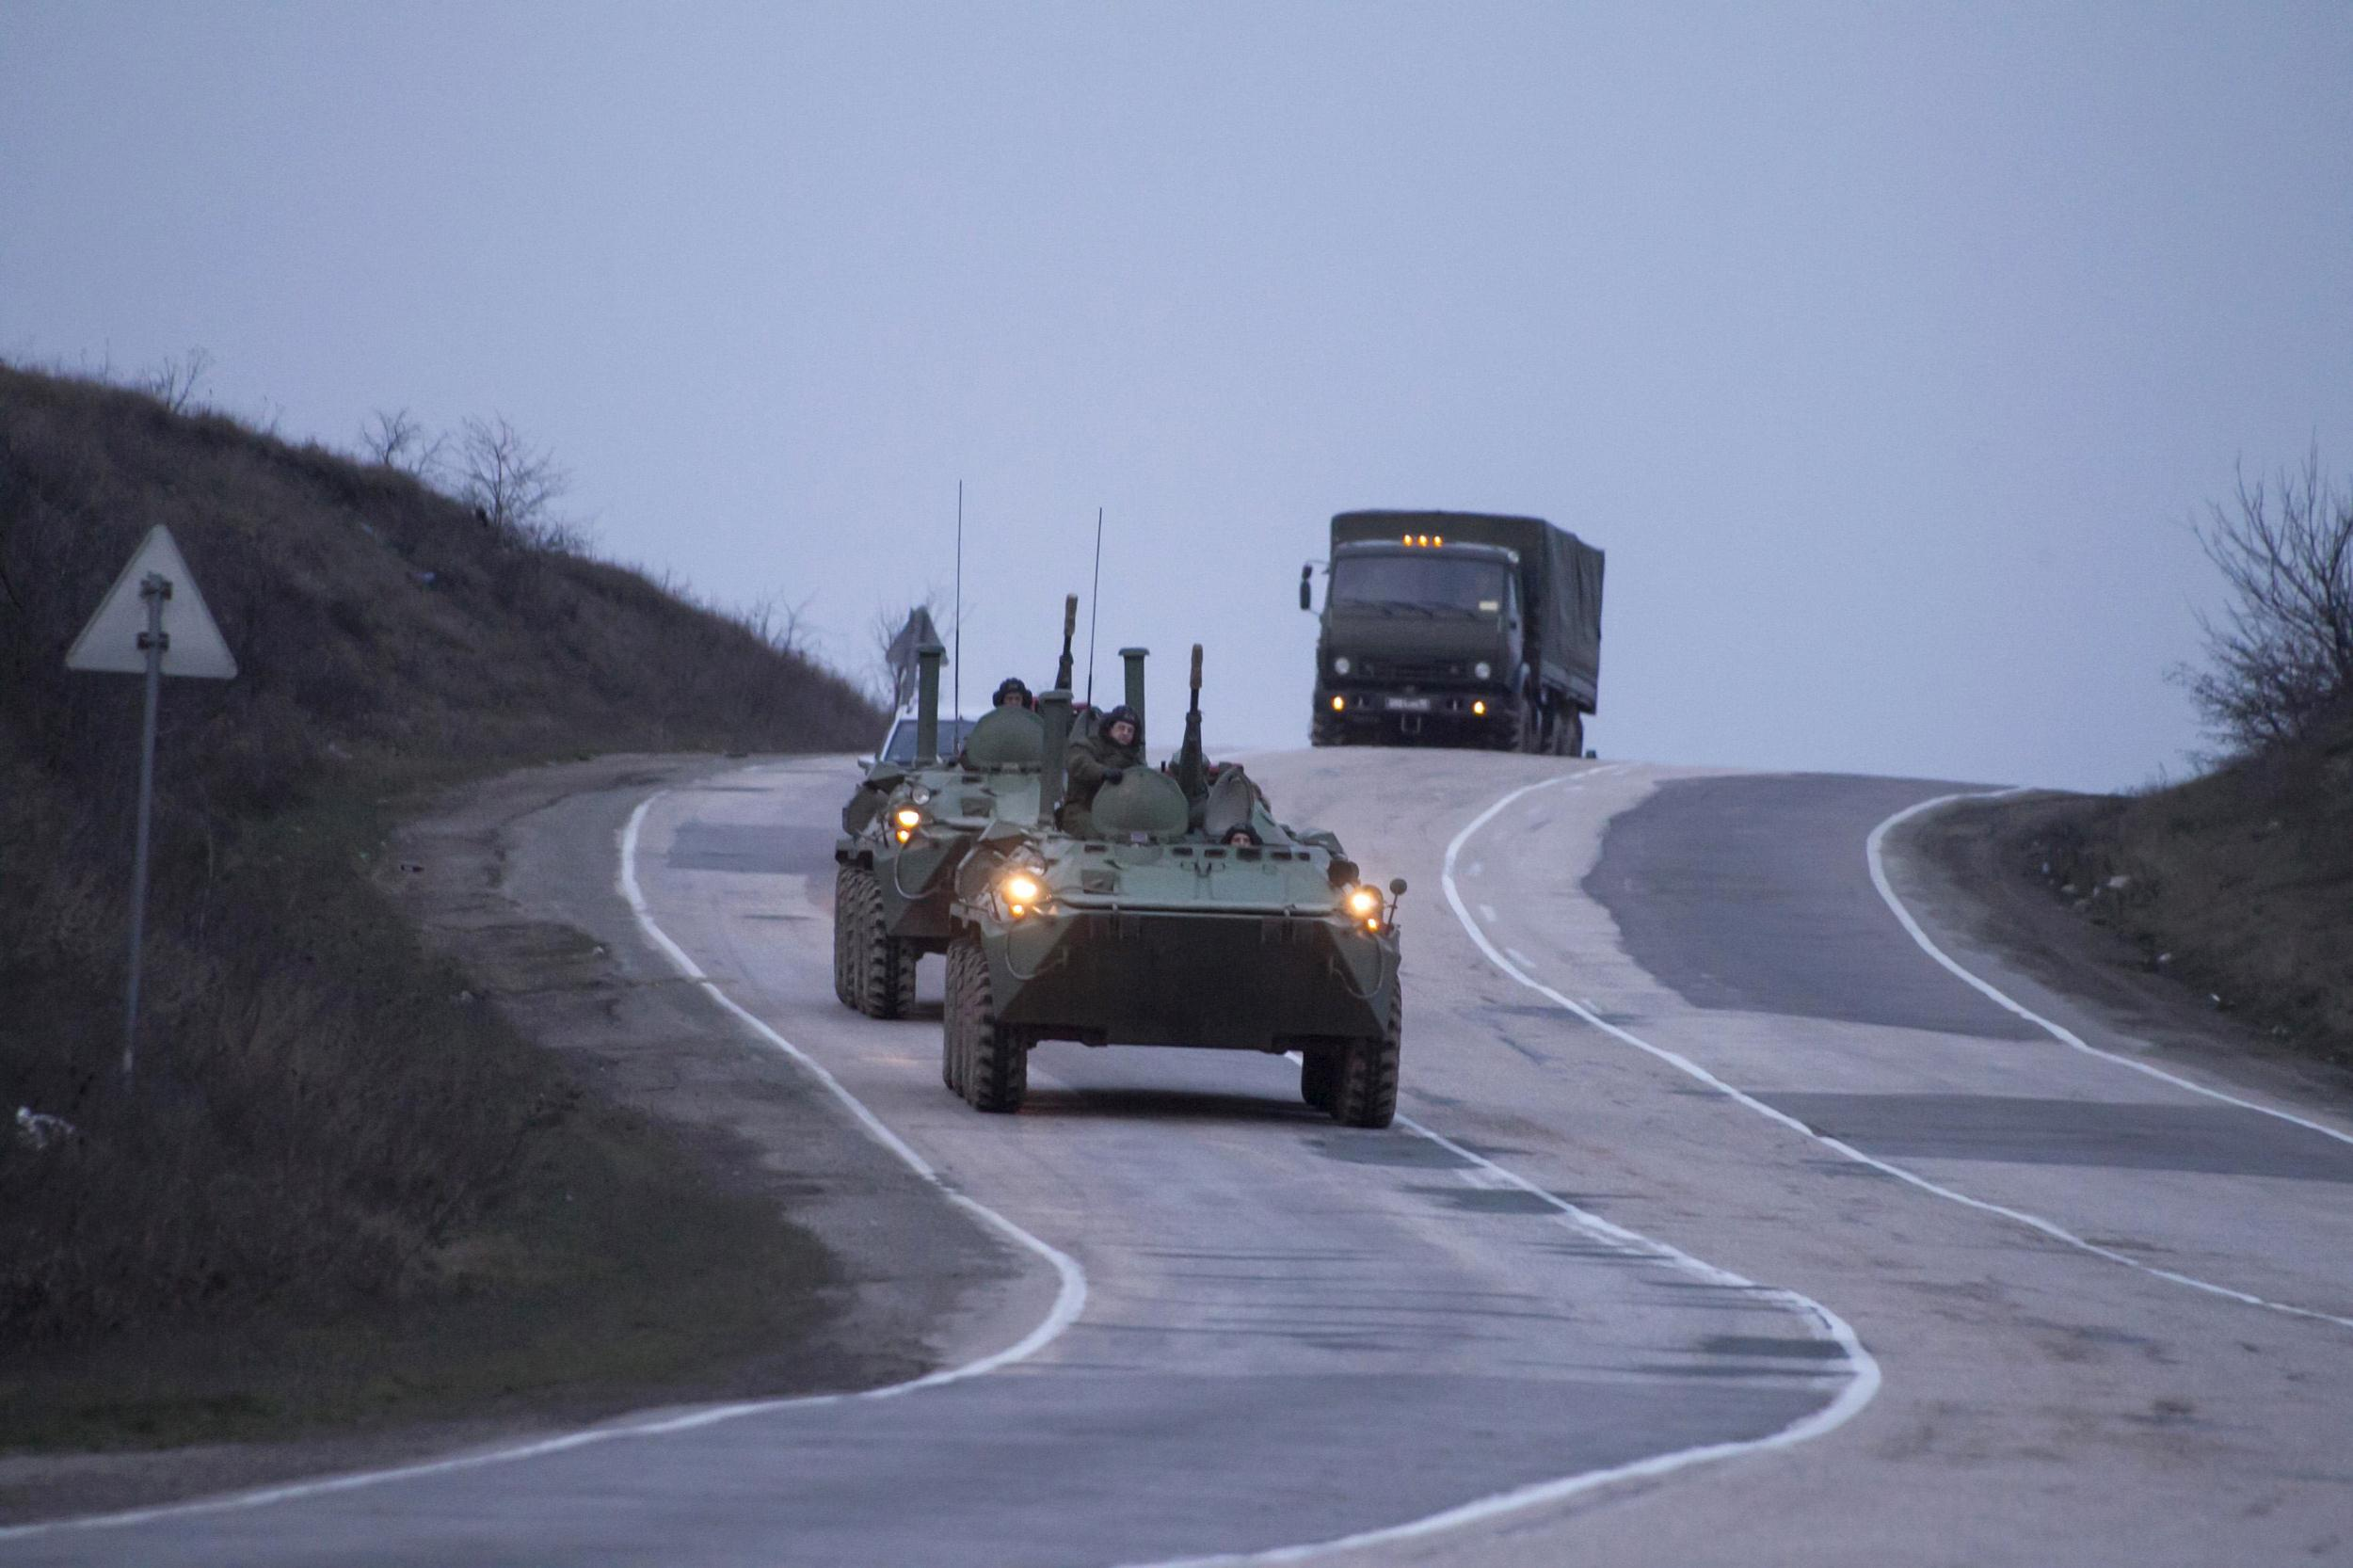 Image: Russian military armored personnel carriers (APC) drive on the road from Sevastopol to Simferopol